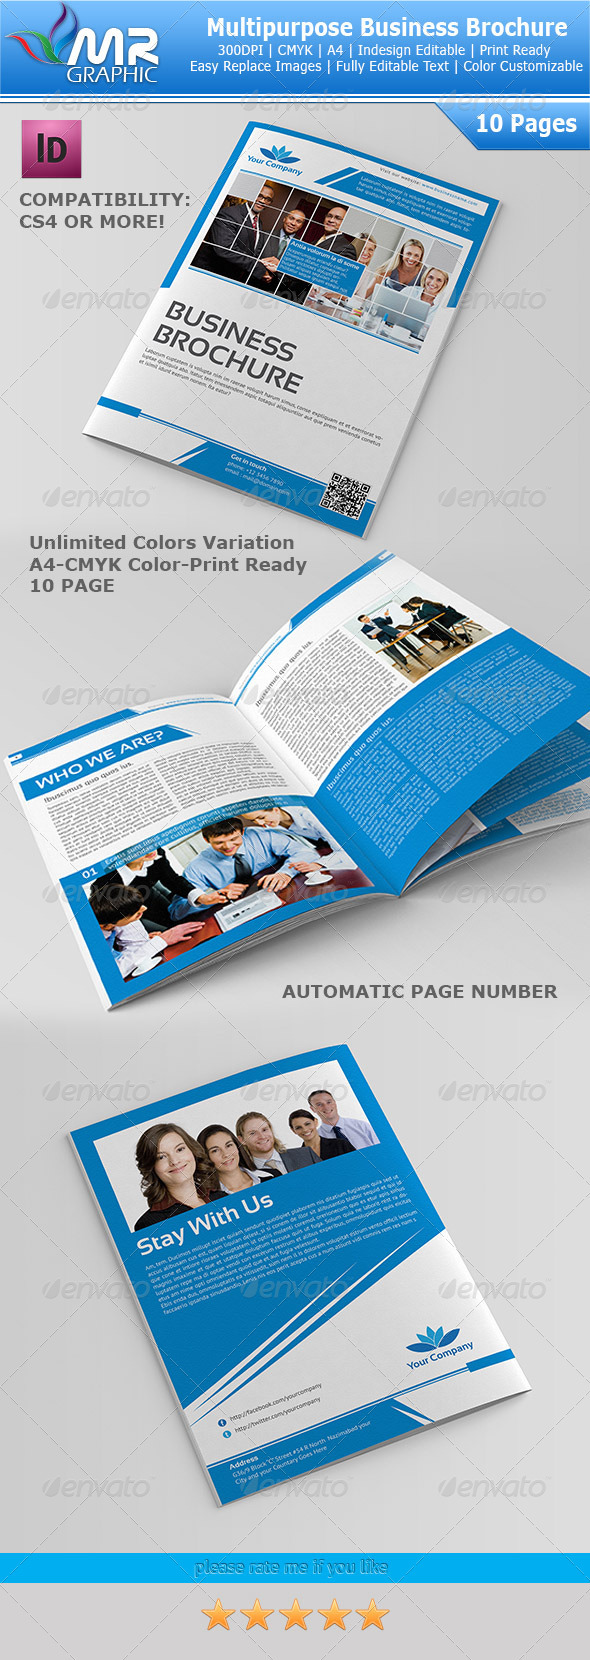 GraphicRiver 10 Page Multipurpose Business Brochure 3647028